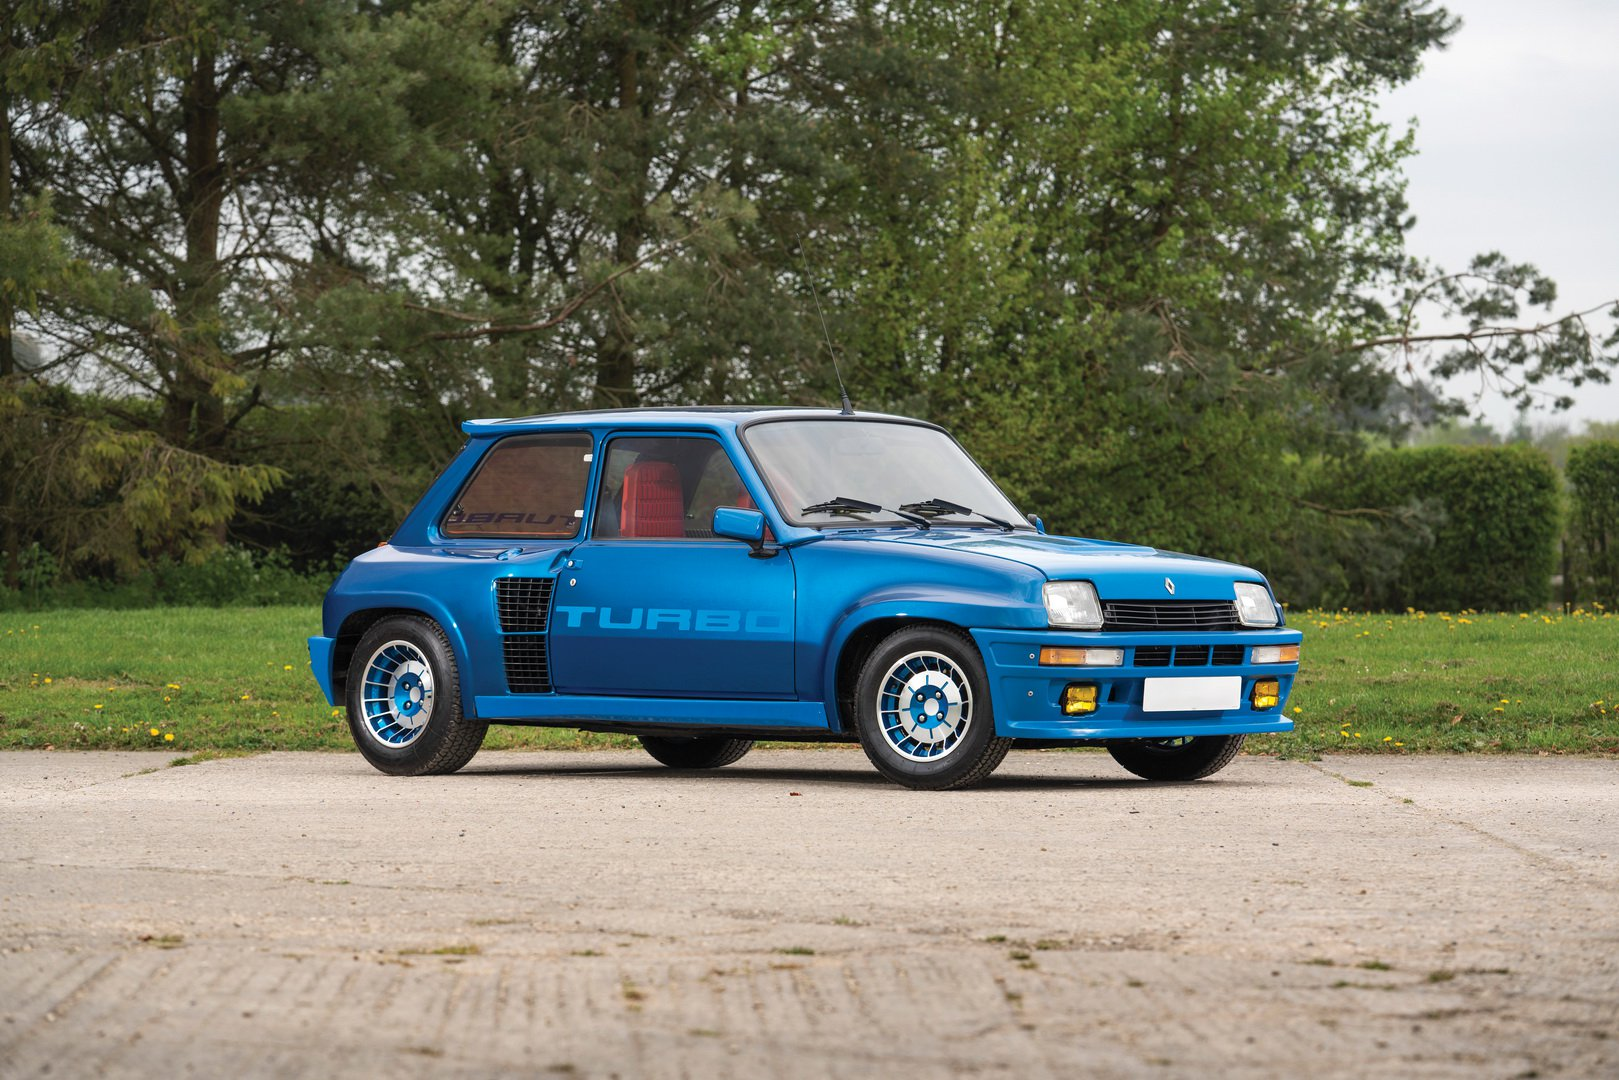 Renault-5-Turbo-for-sale-1